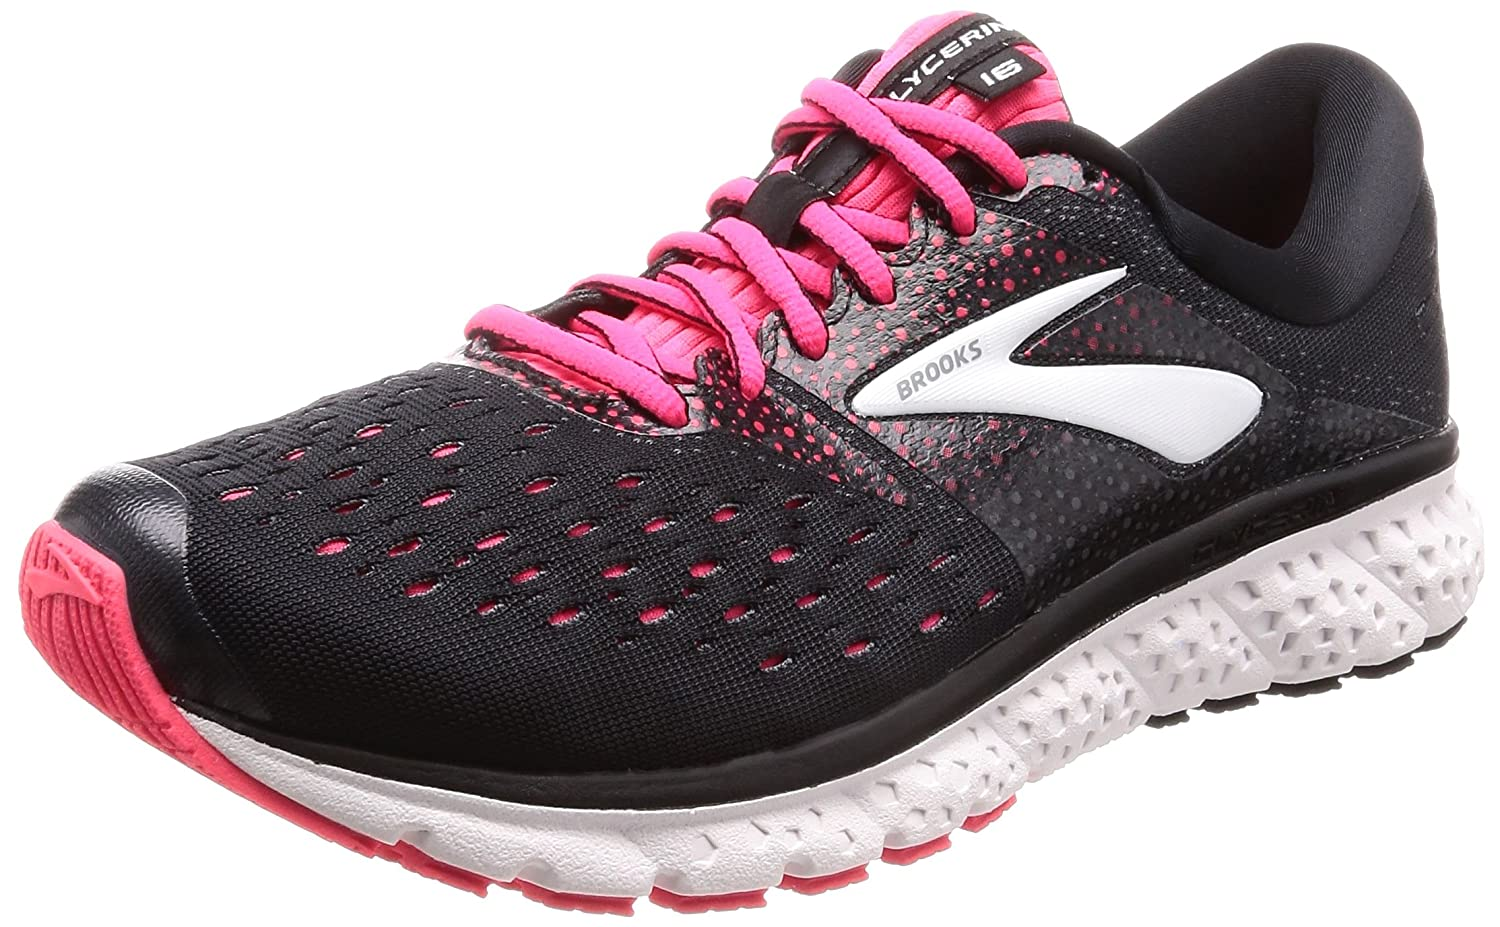 Brooks Womens Glycerin 16 B077YQ67M4 8 B(M) US|Black/Pink/Grey